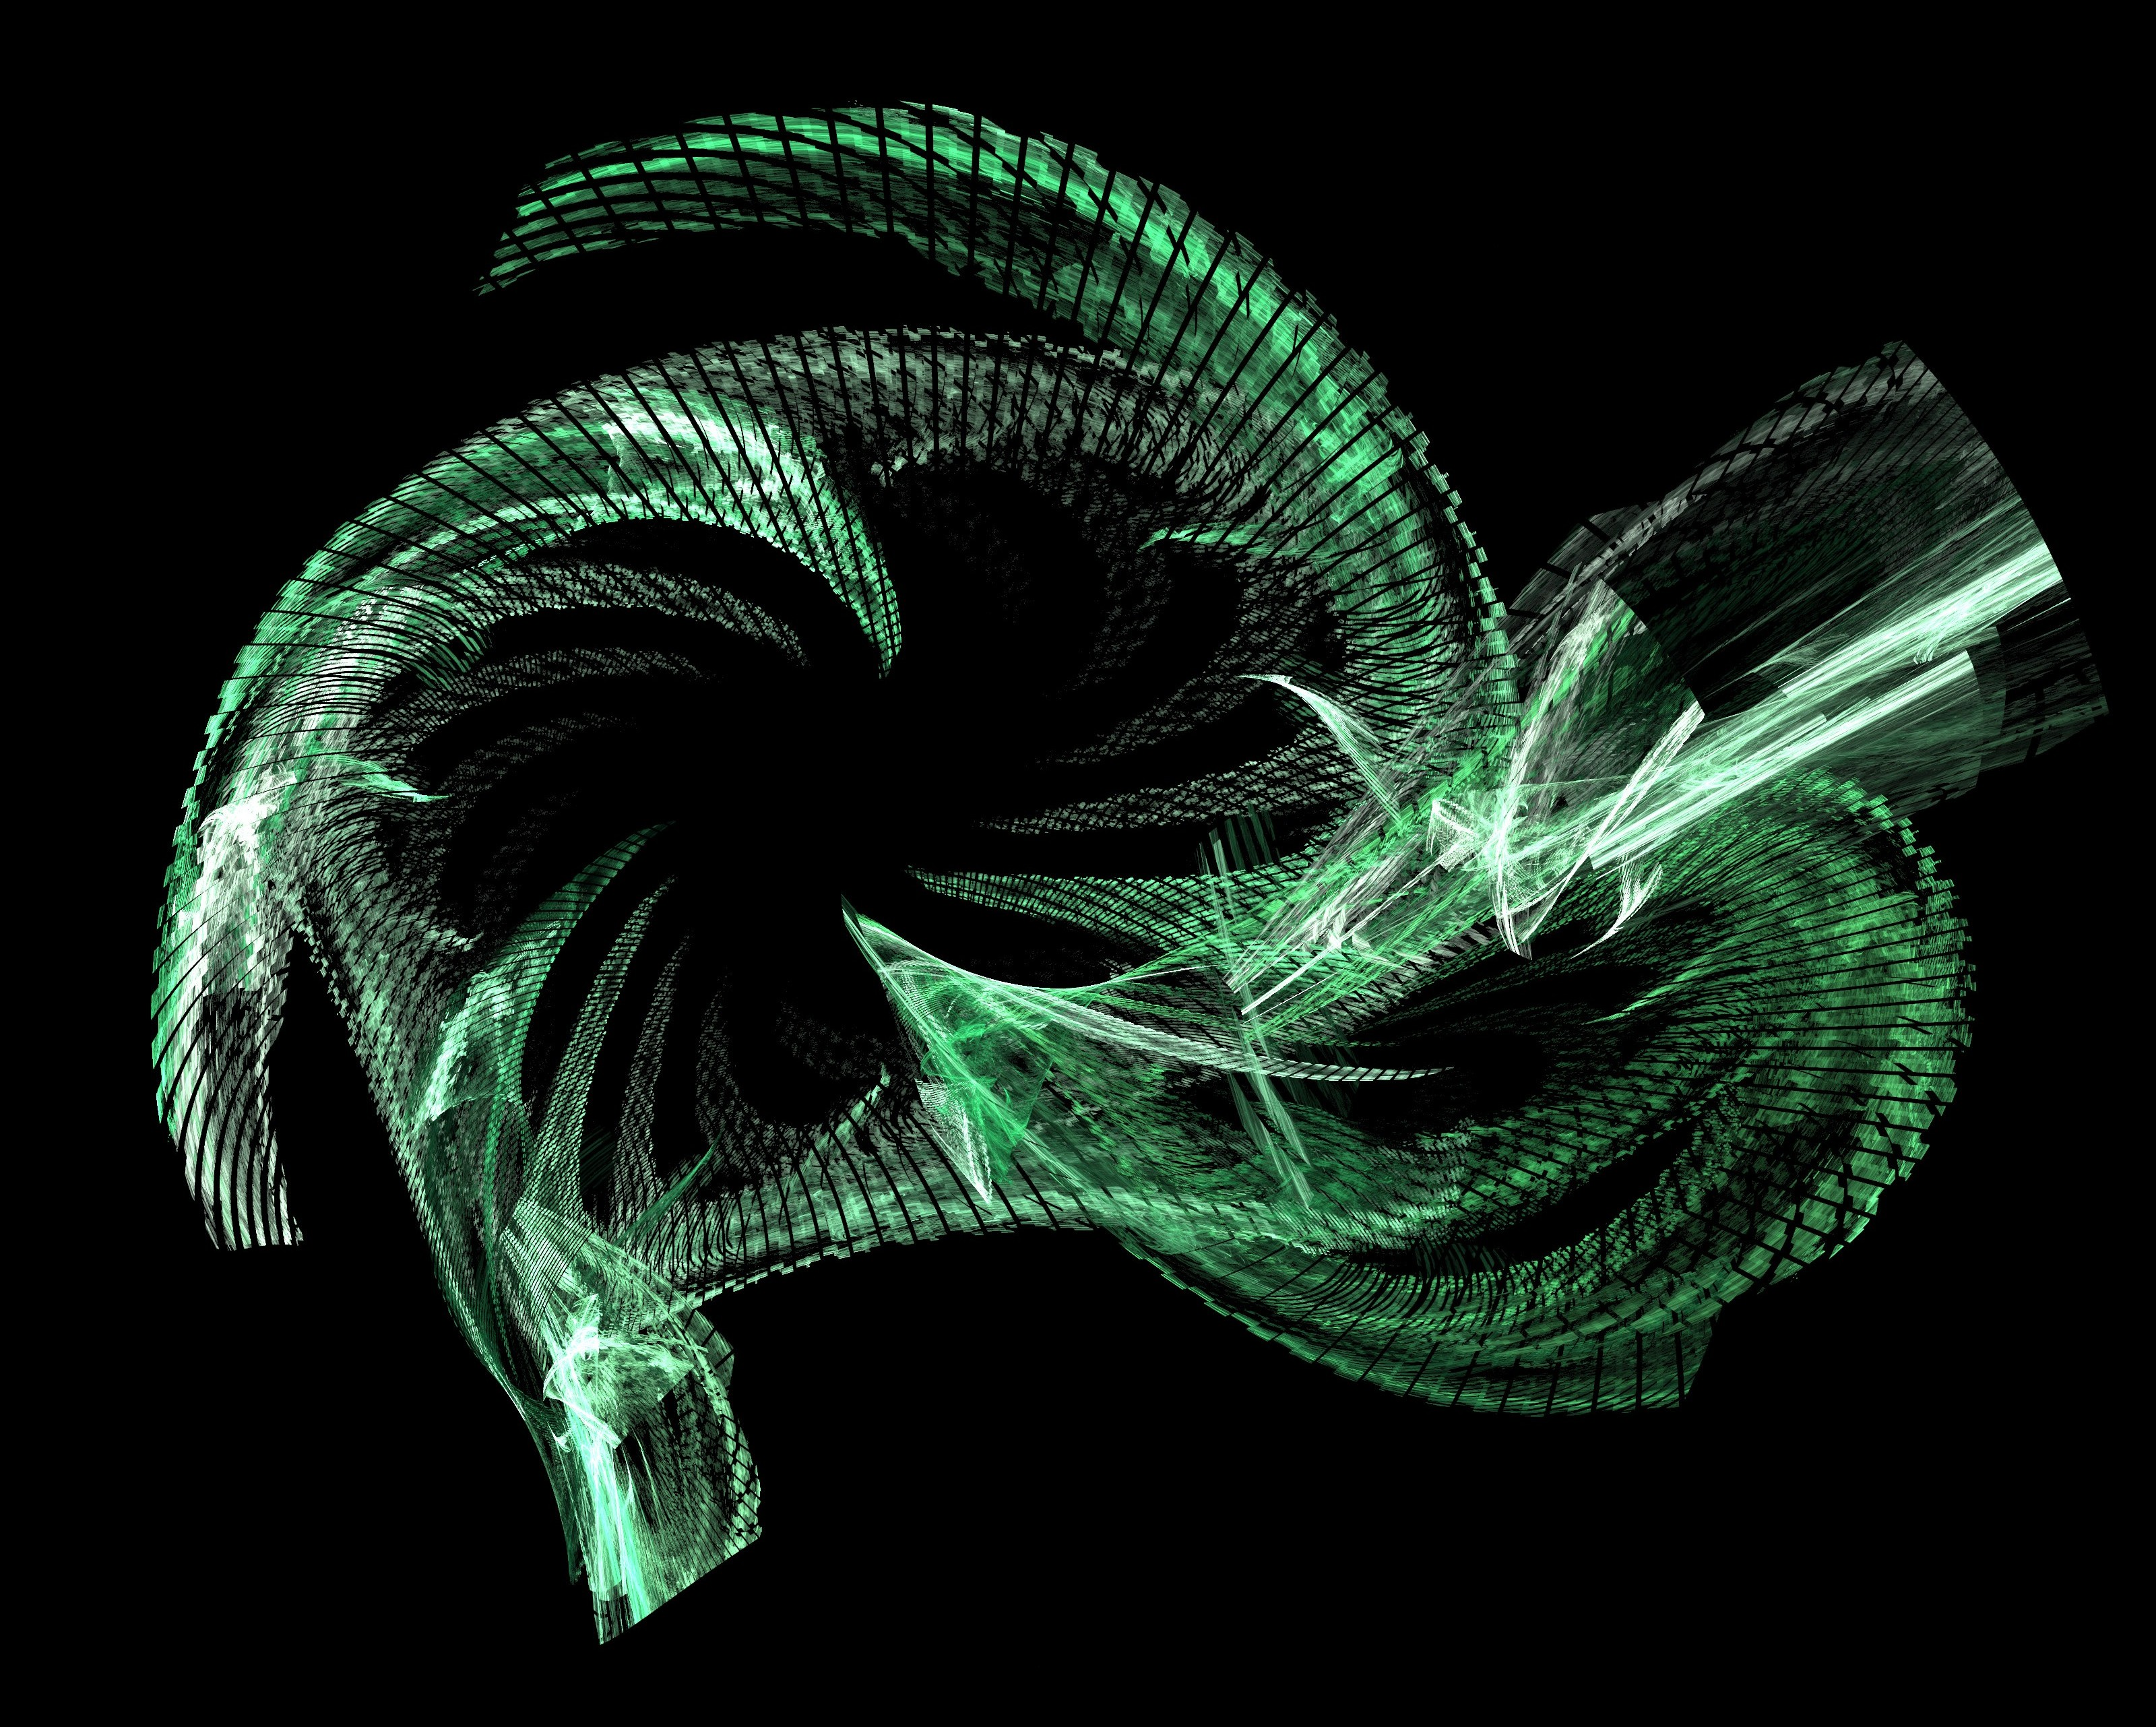 fractured green fractal rendering curved rotation lines